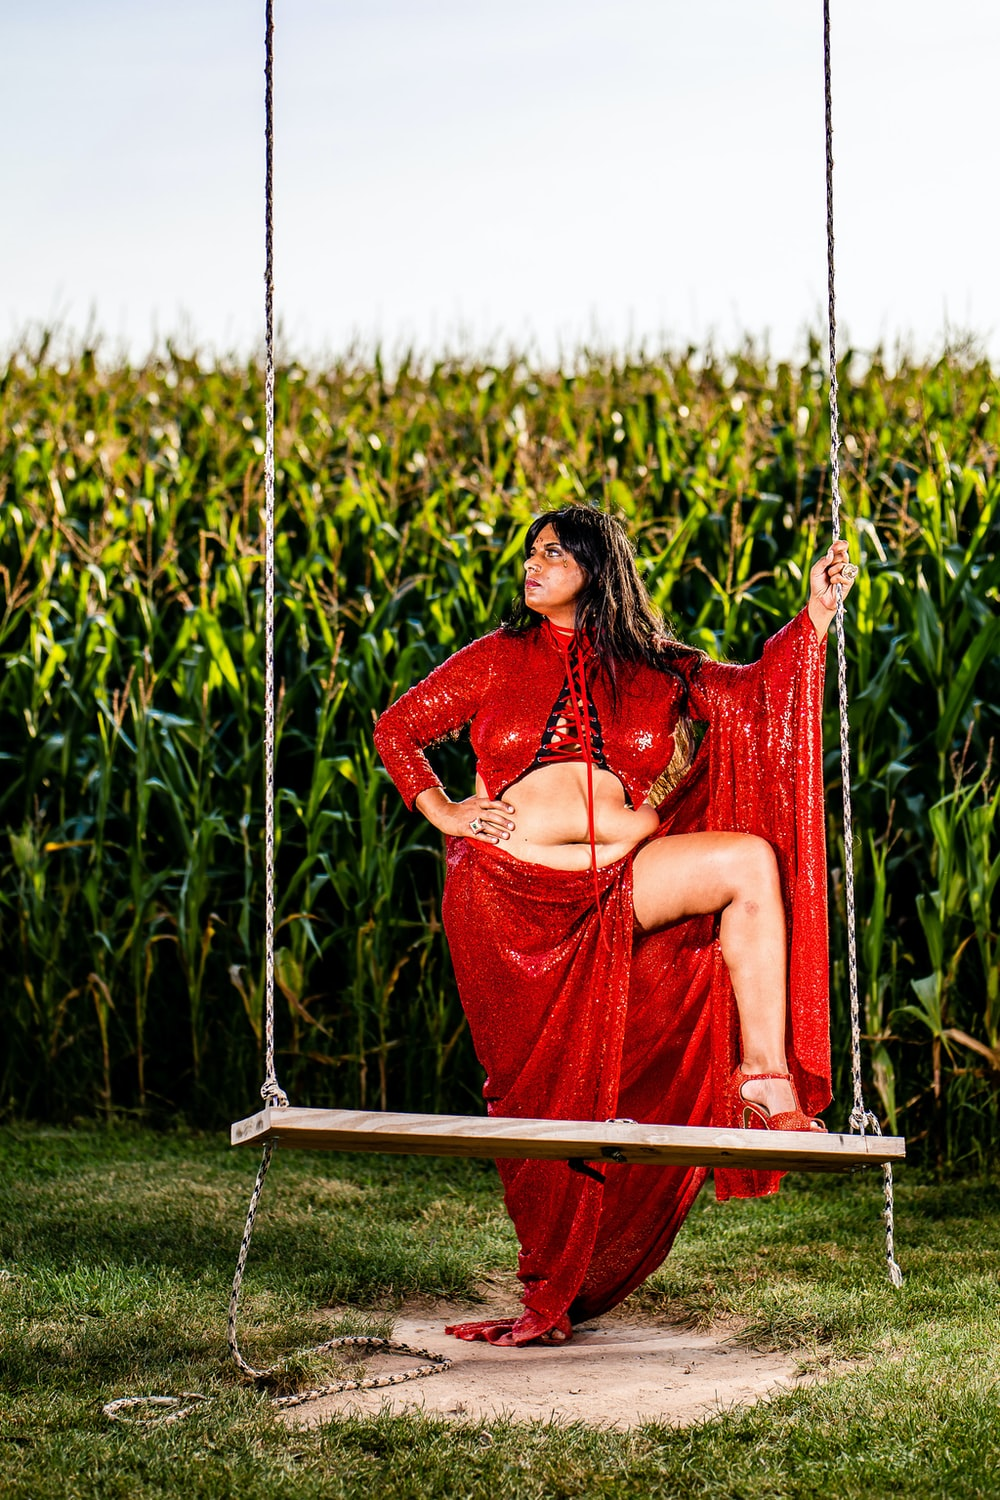 woman in red dress sitting on red hammock